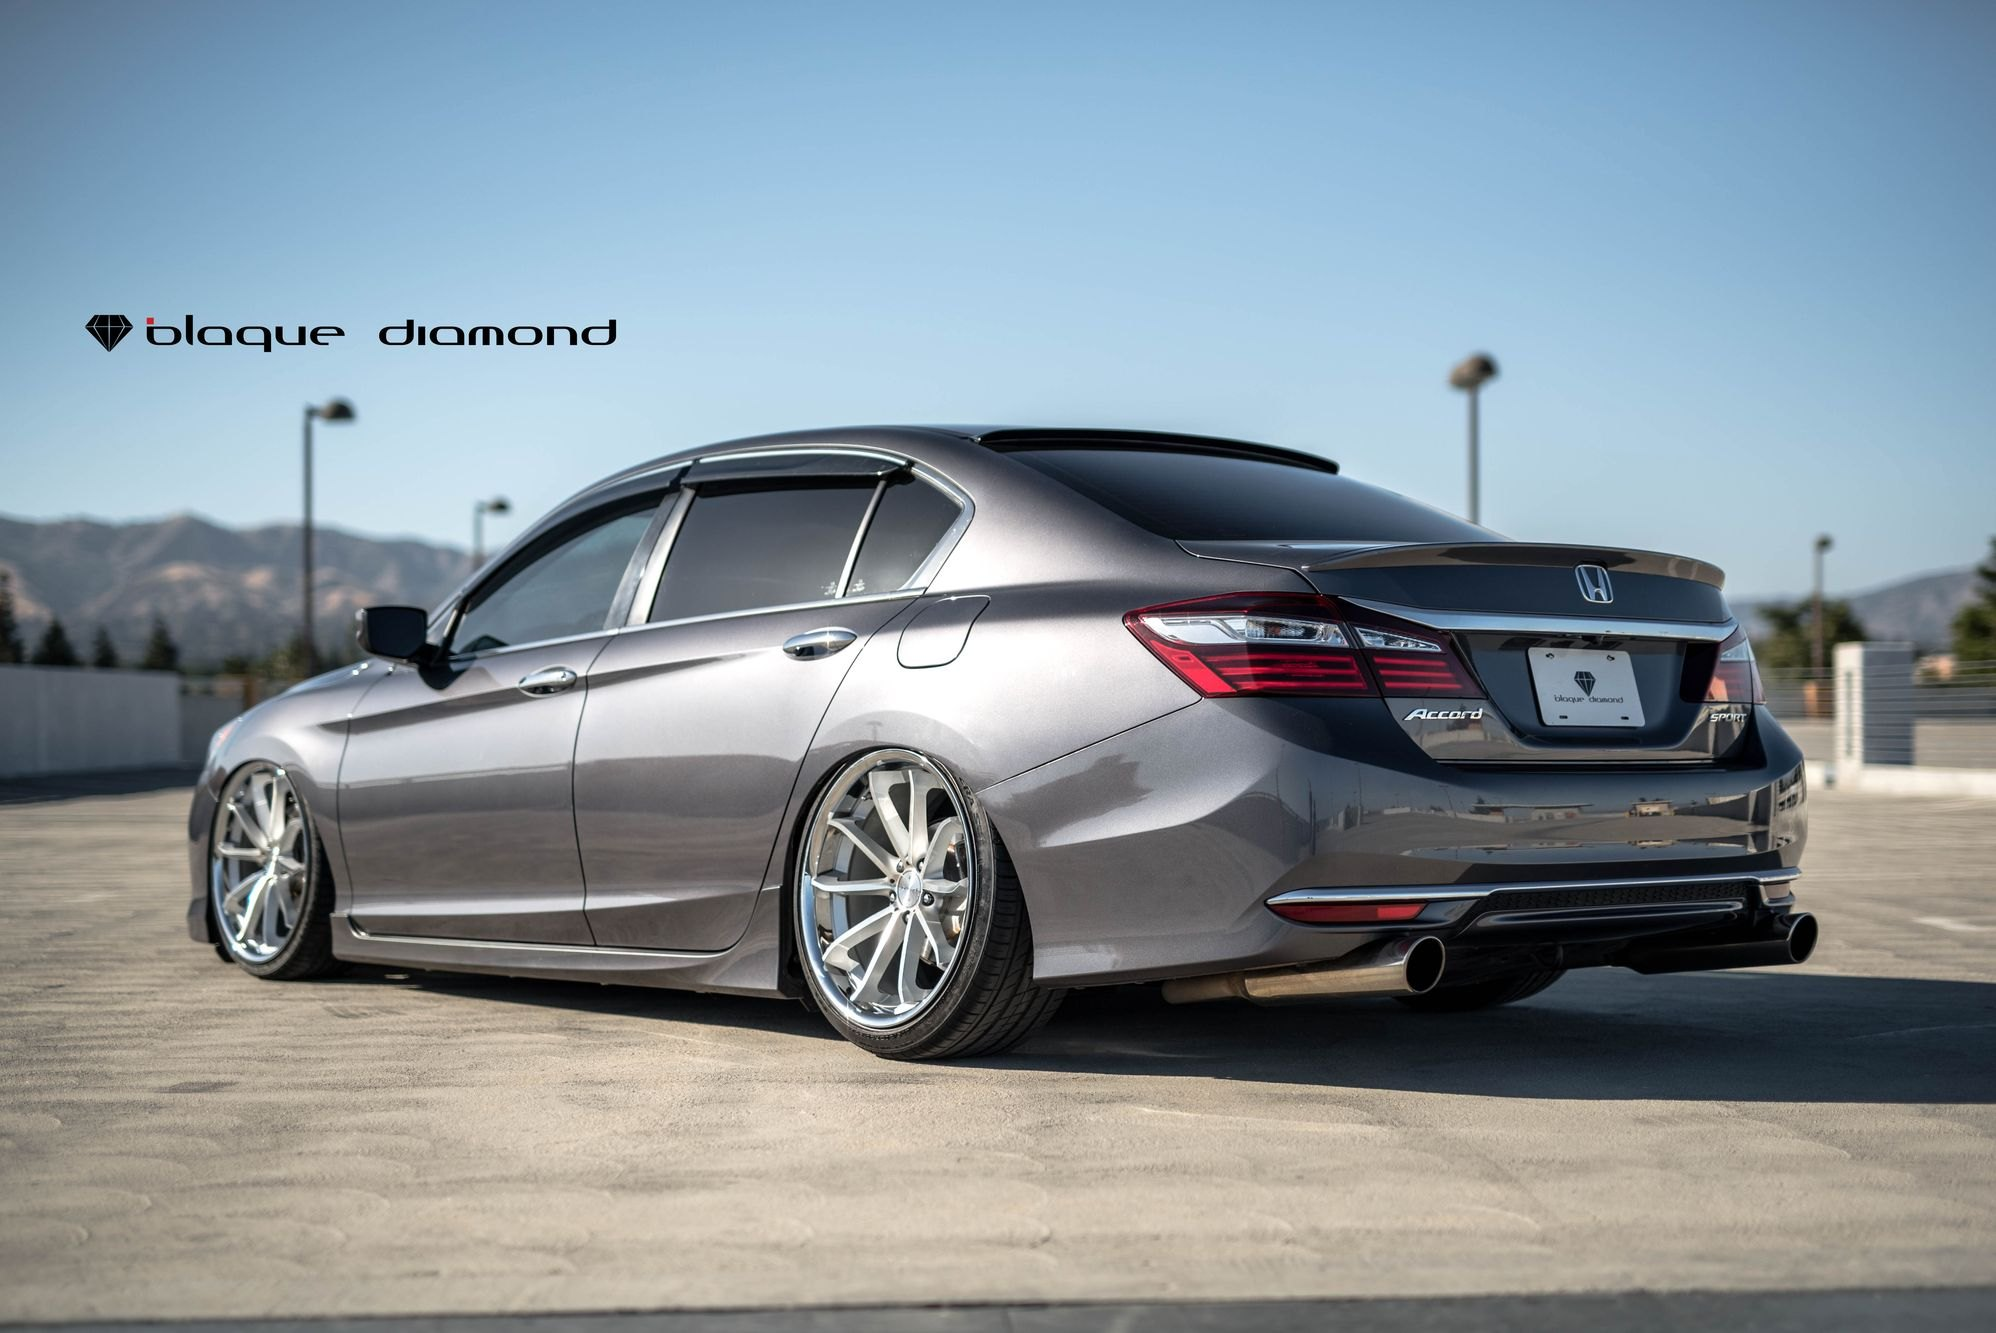 Grand honda accord with solid gray exterior color and for Grey honda accord